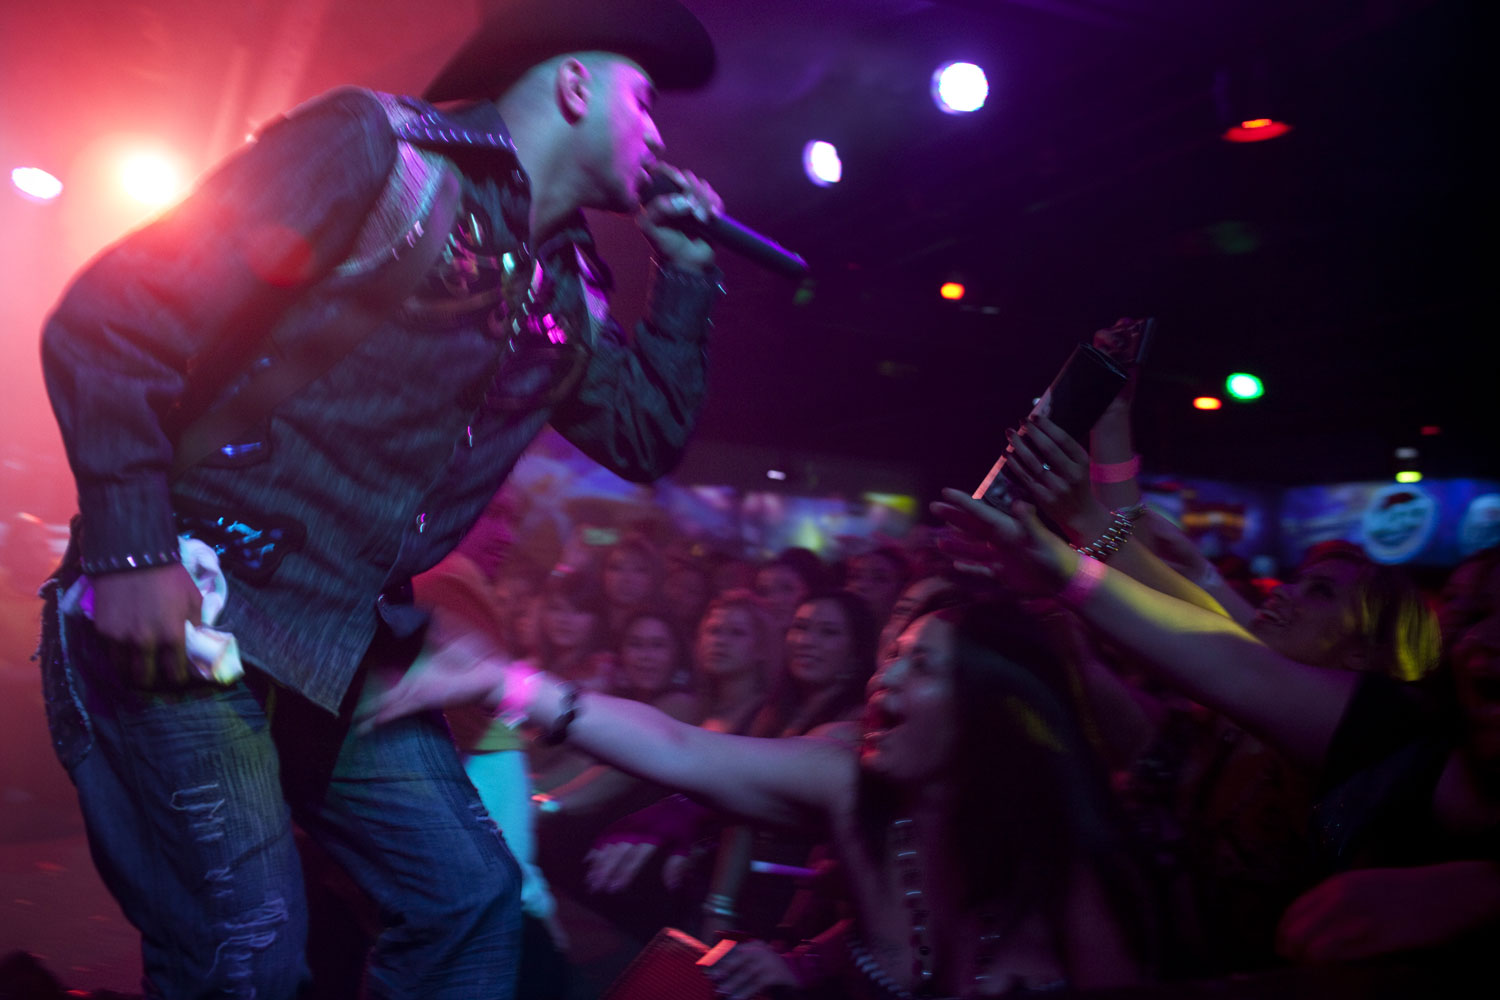 Performance                               Andres  El Macizo  Márquez, 22, performs at El Rodeo Night Club in Pico Rivera, Calif. The fast-paced narcocorridos that he plays celebrate the lives and crimes of Mexican drug lords